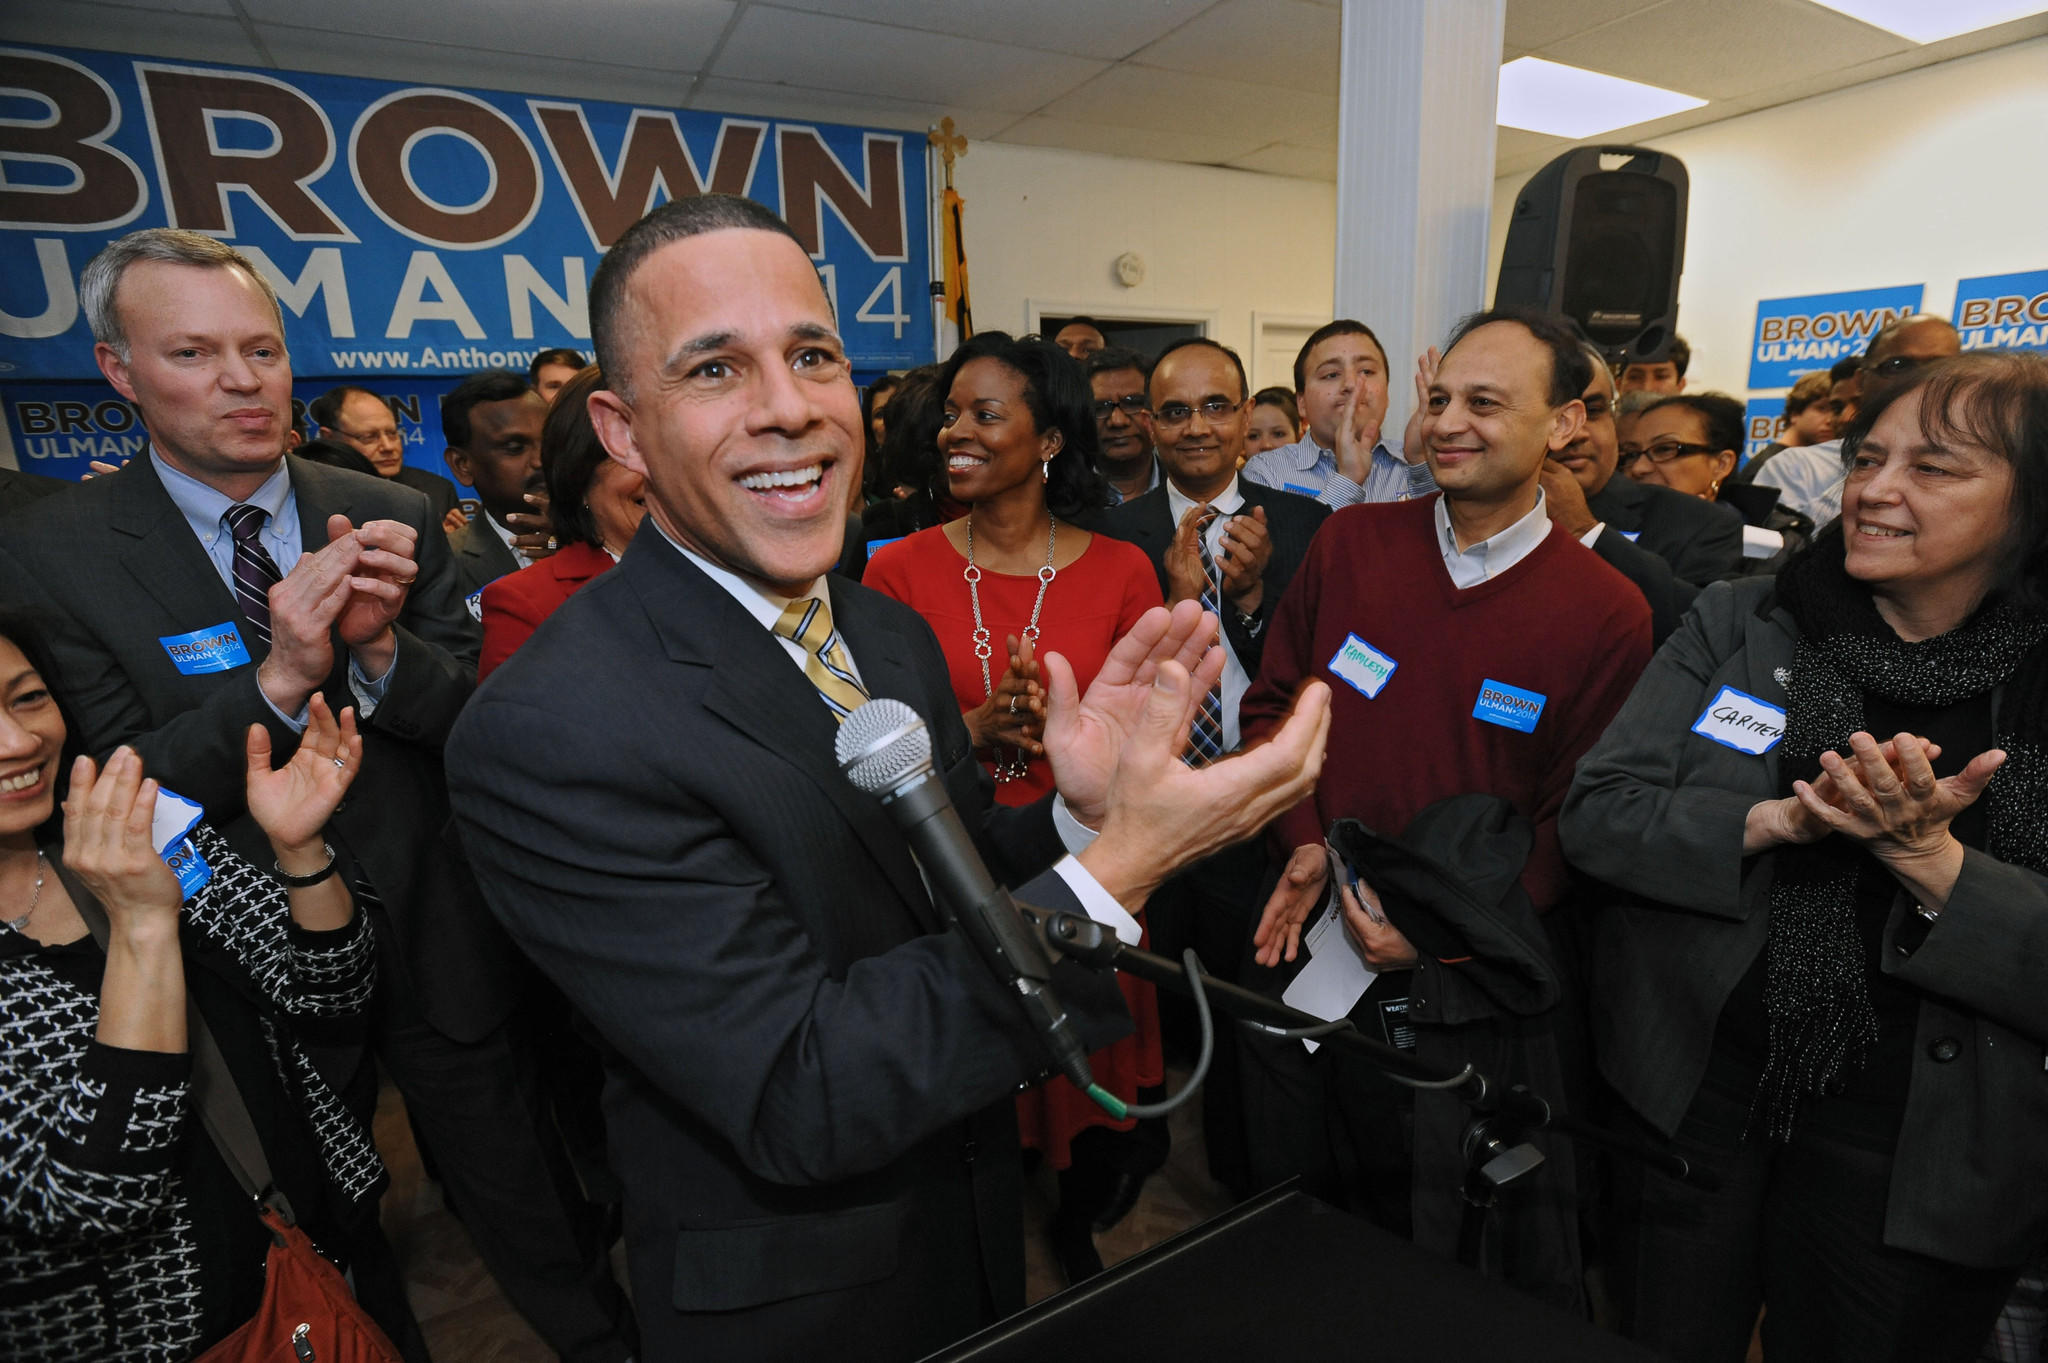 Gubernatorial candidate Lt. Gov. Anthony Brown rallies his supporters as he opens his Montgomery County campaign headquarter.